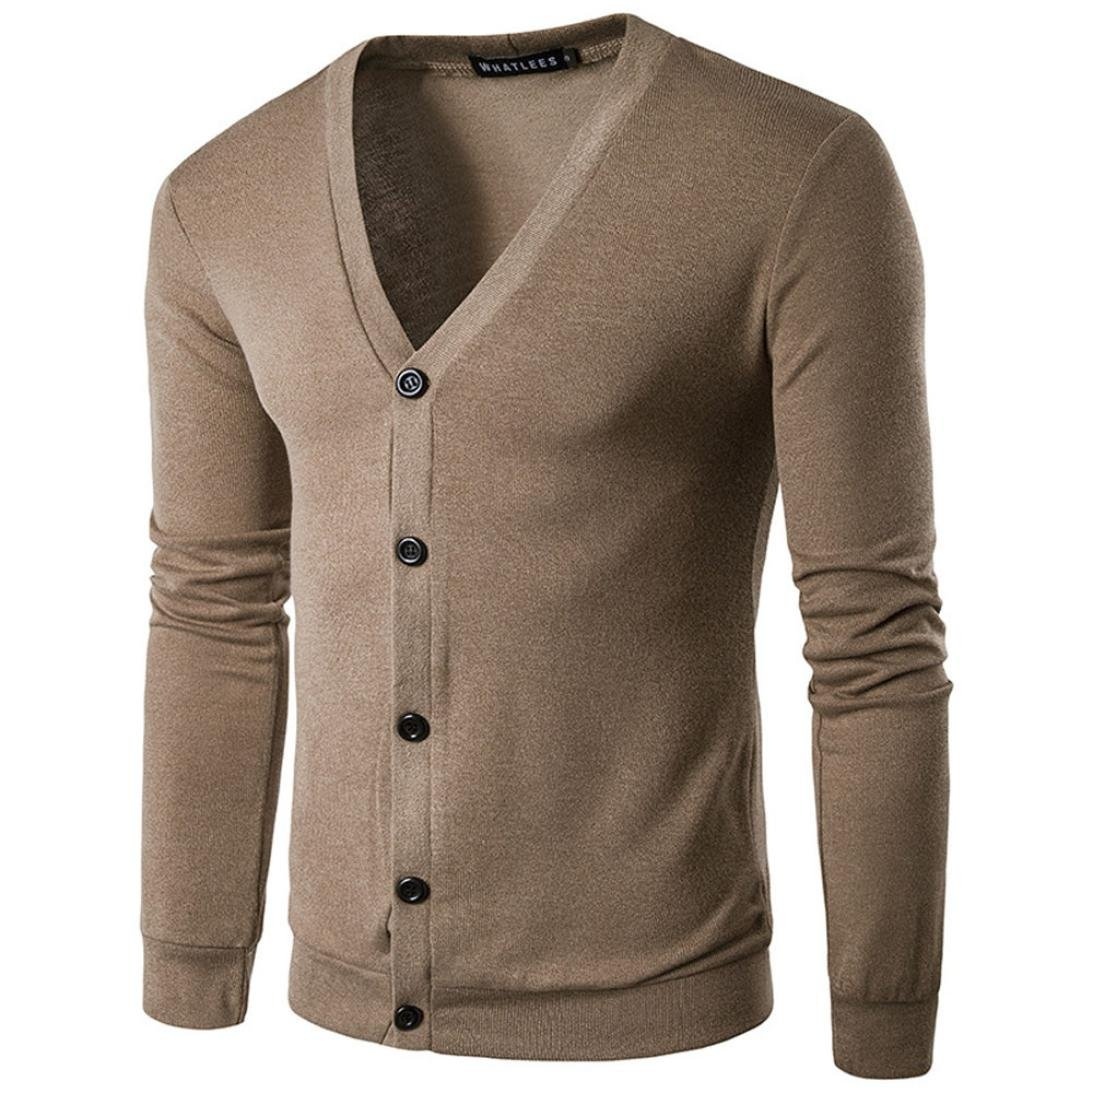 Yukong Mens Autumn Front Button Knitted Cardigan Sweater V Neck Long Sleeve Basic Knit Coat